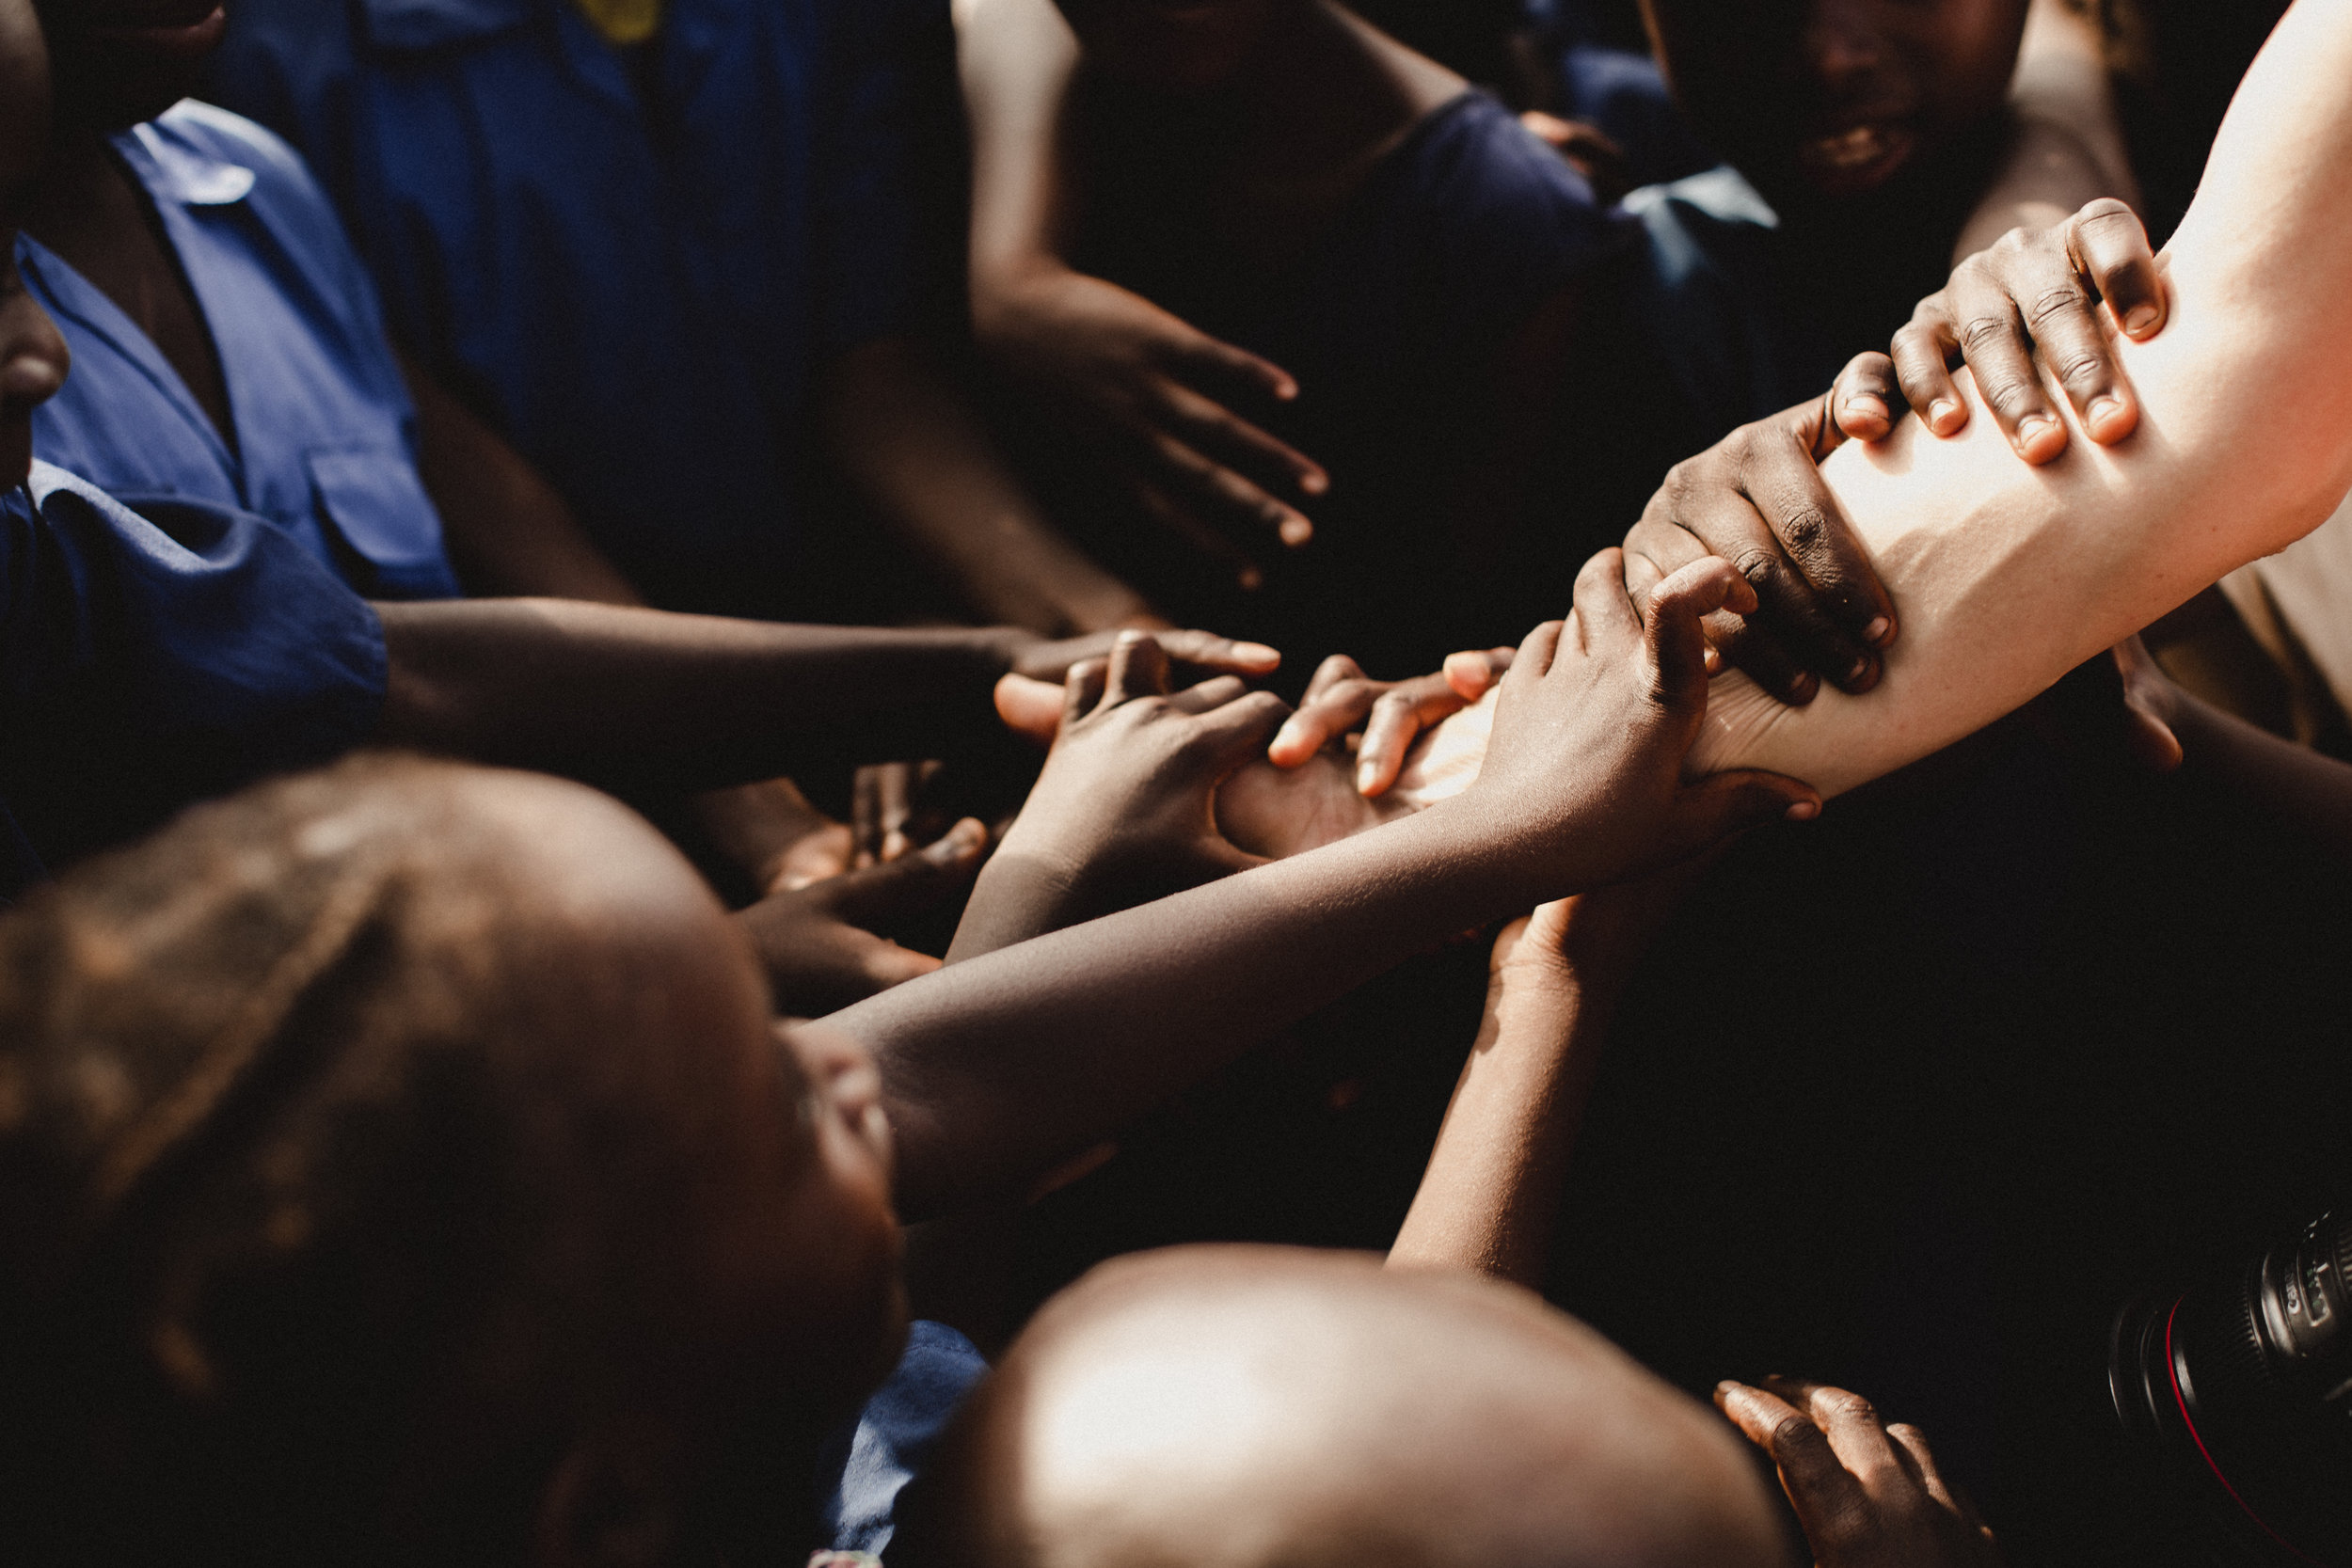 this is one of my favorite moments captured on the trip. there is something so precious about a child experiencing a different culture for the first time. much like many of us had never seen africa, many of the children there have never seen another race. every day we would encounter countless children touching our skin with pure curiosity. this photo resembles just that, and provides a sense of unity for me. in knowing that through the many differences, we are all one.